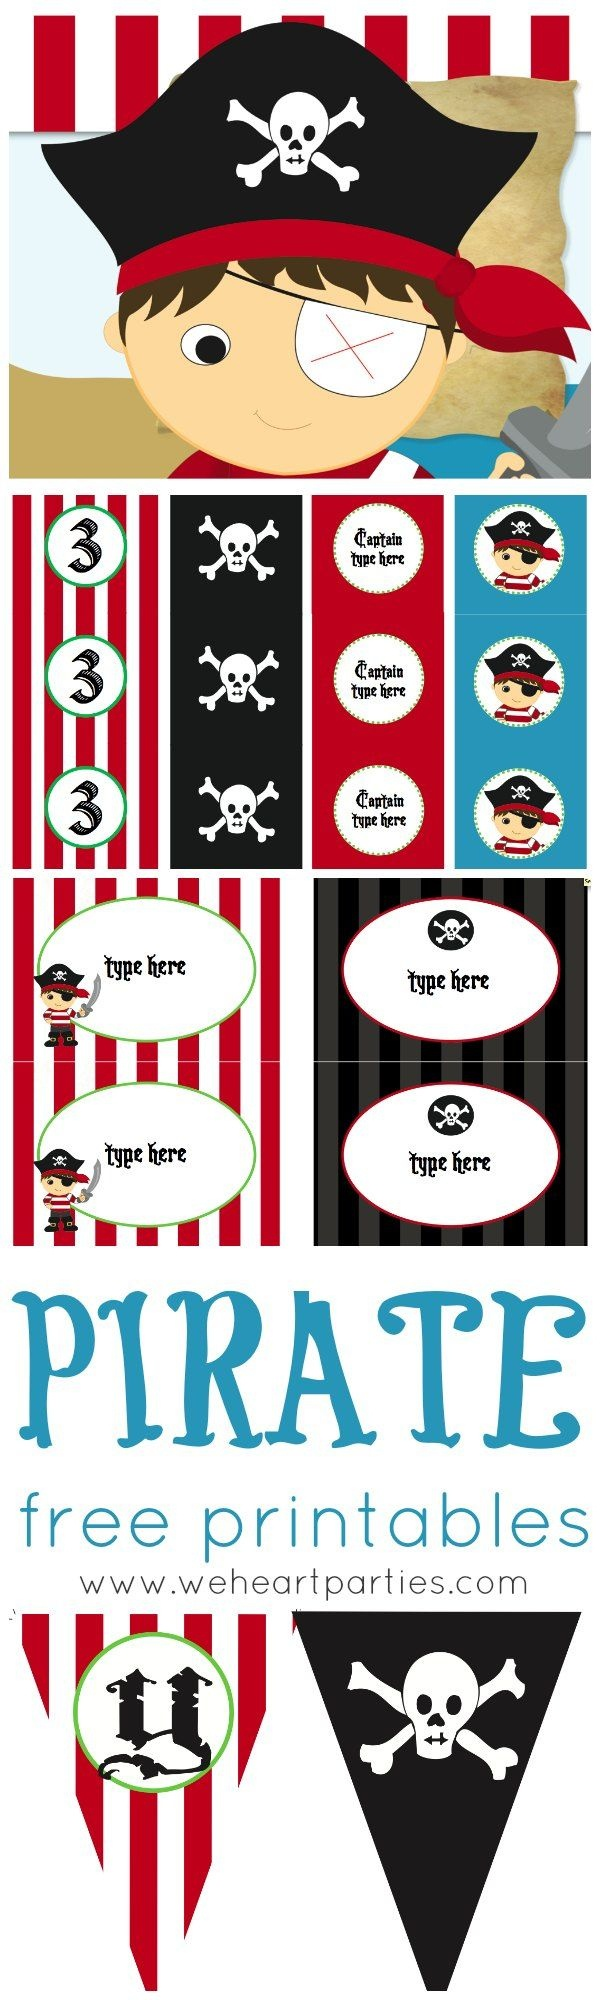 Free Pirate Party Printables (Editable With Child's Name And Age Too - Free Pirate Birthday Party Printables